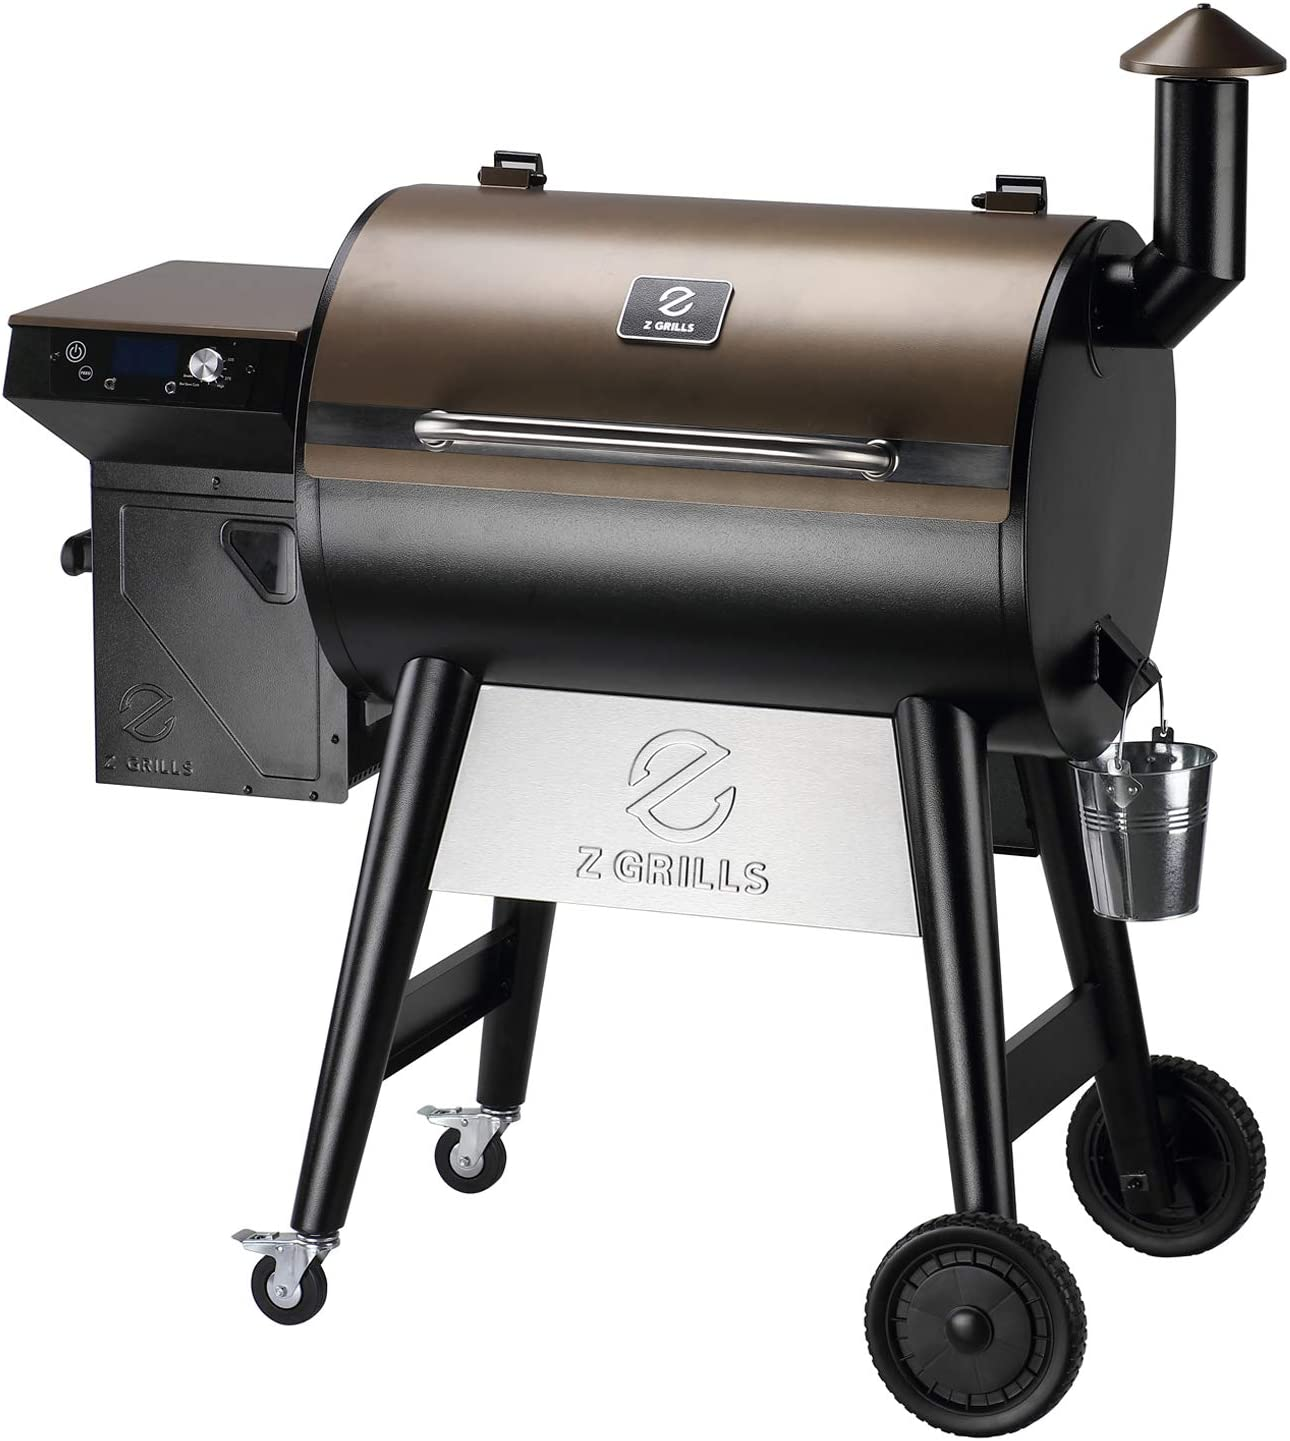 Z GRILLS 7002F 2021 Upgraded Wood Pellet Grill Smoker Portable for Outdoor BBQ Cooking, 8 in 1 BBQ Grill and Smoker with Digital Temperature Control, Hopper Clean-Out, Pellet View Window, 697 sq. in (Rain Cover Included)